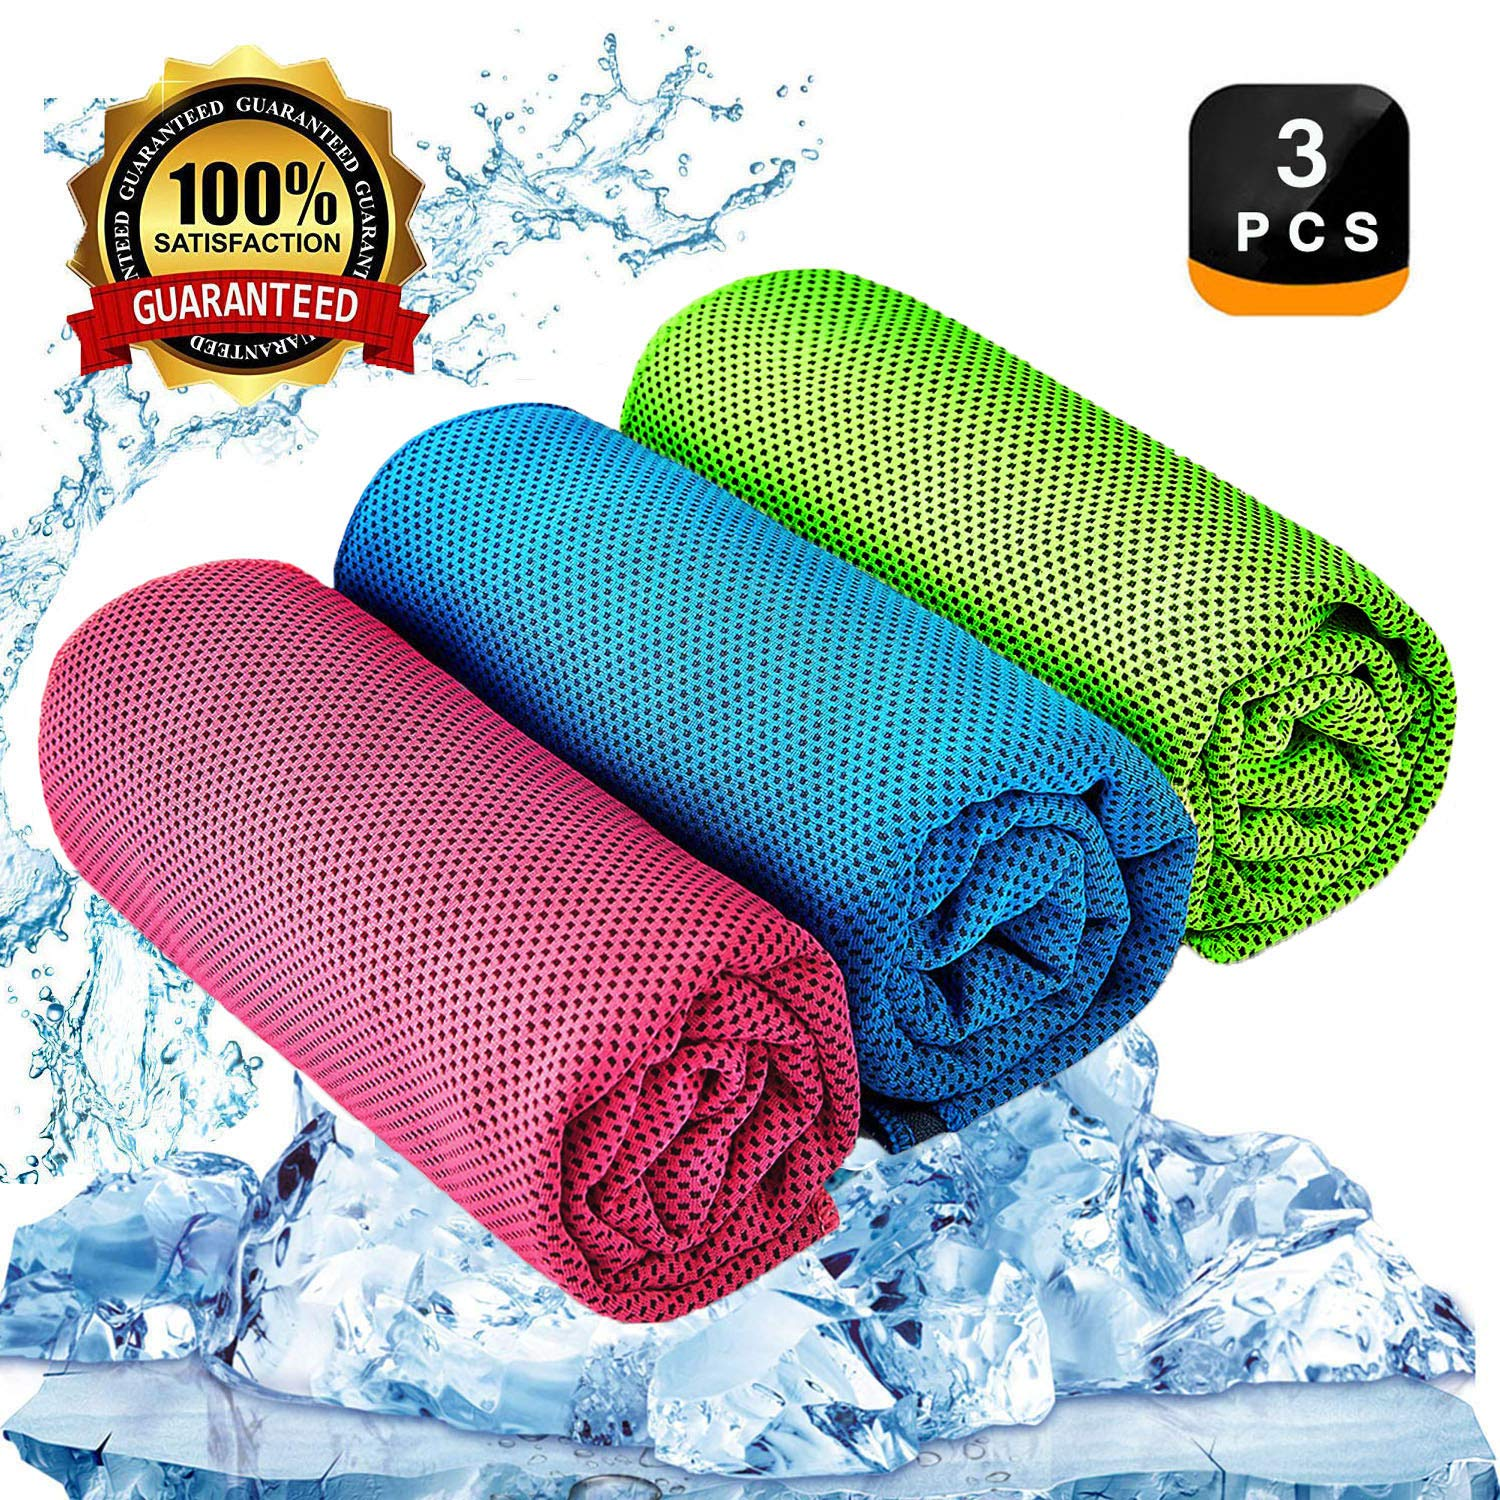 YQXCC Cooling Towel 3 Pcs (47''x12'') Microfiber Towel for Instant Cooling Relief, Cool Cold Towel for Yoga Golf Travel Gym Sports Camping Football & Outdoor Sports (Light Blue/Green/Rose Red) by YQXCC